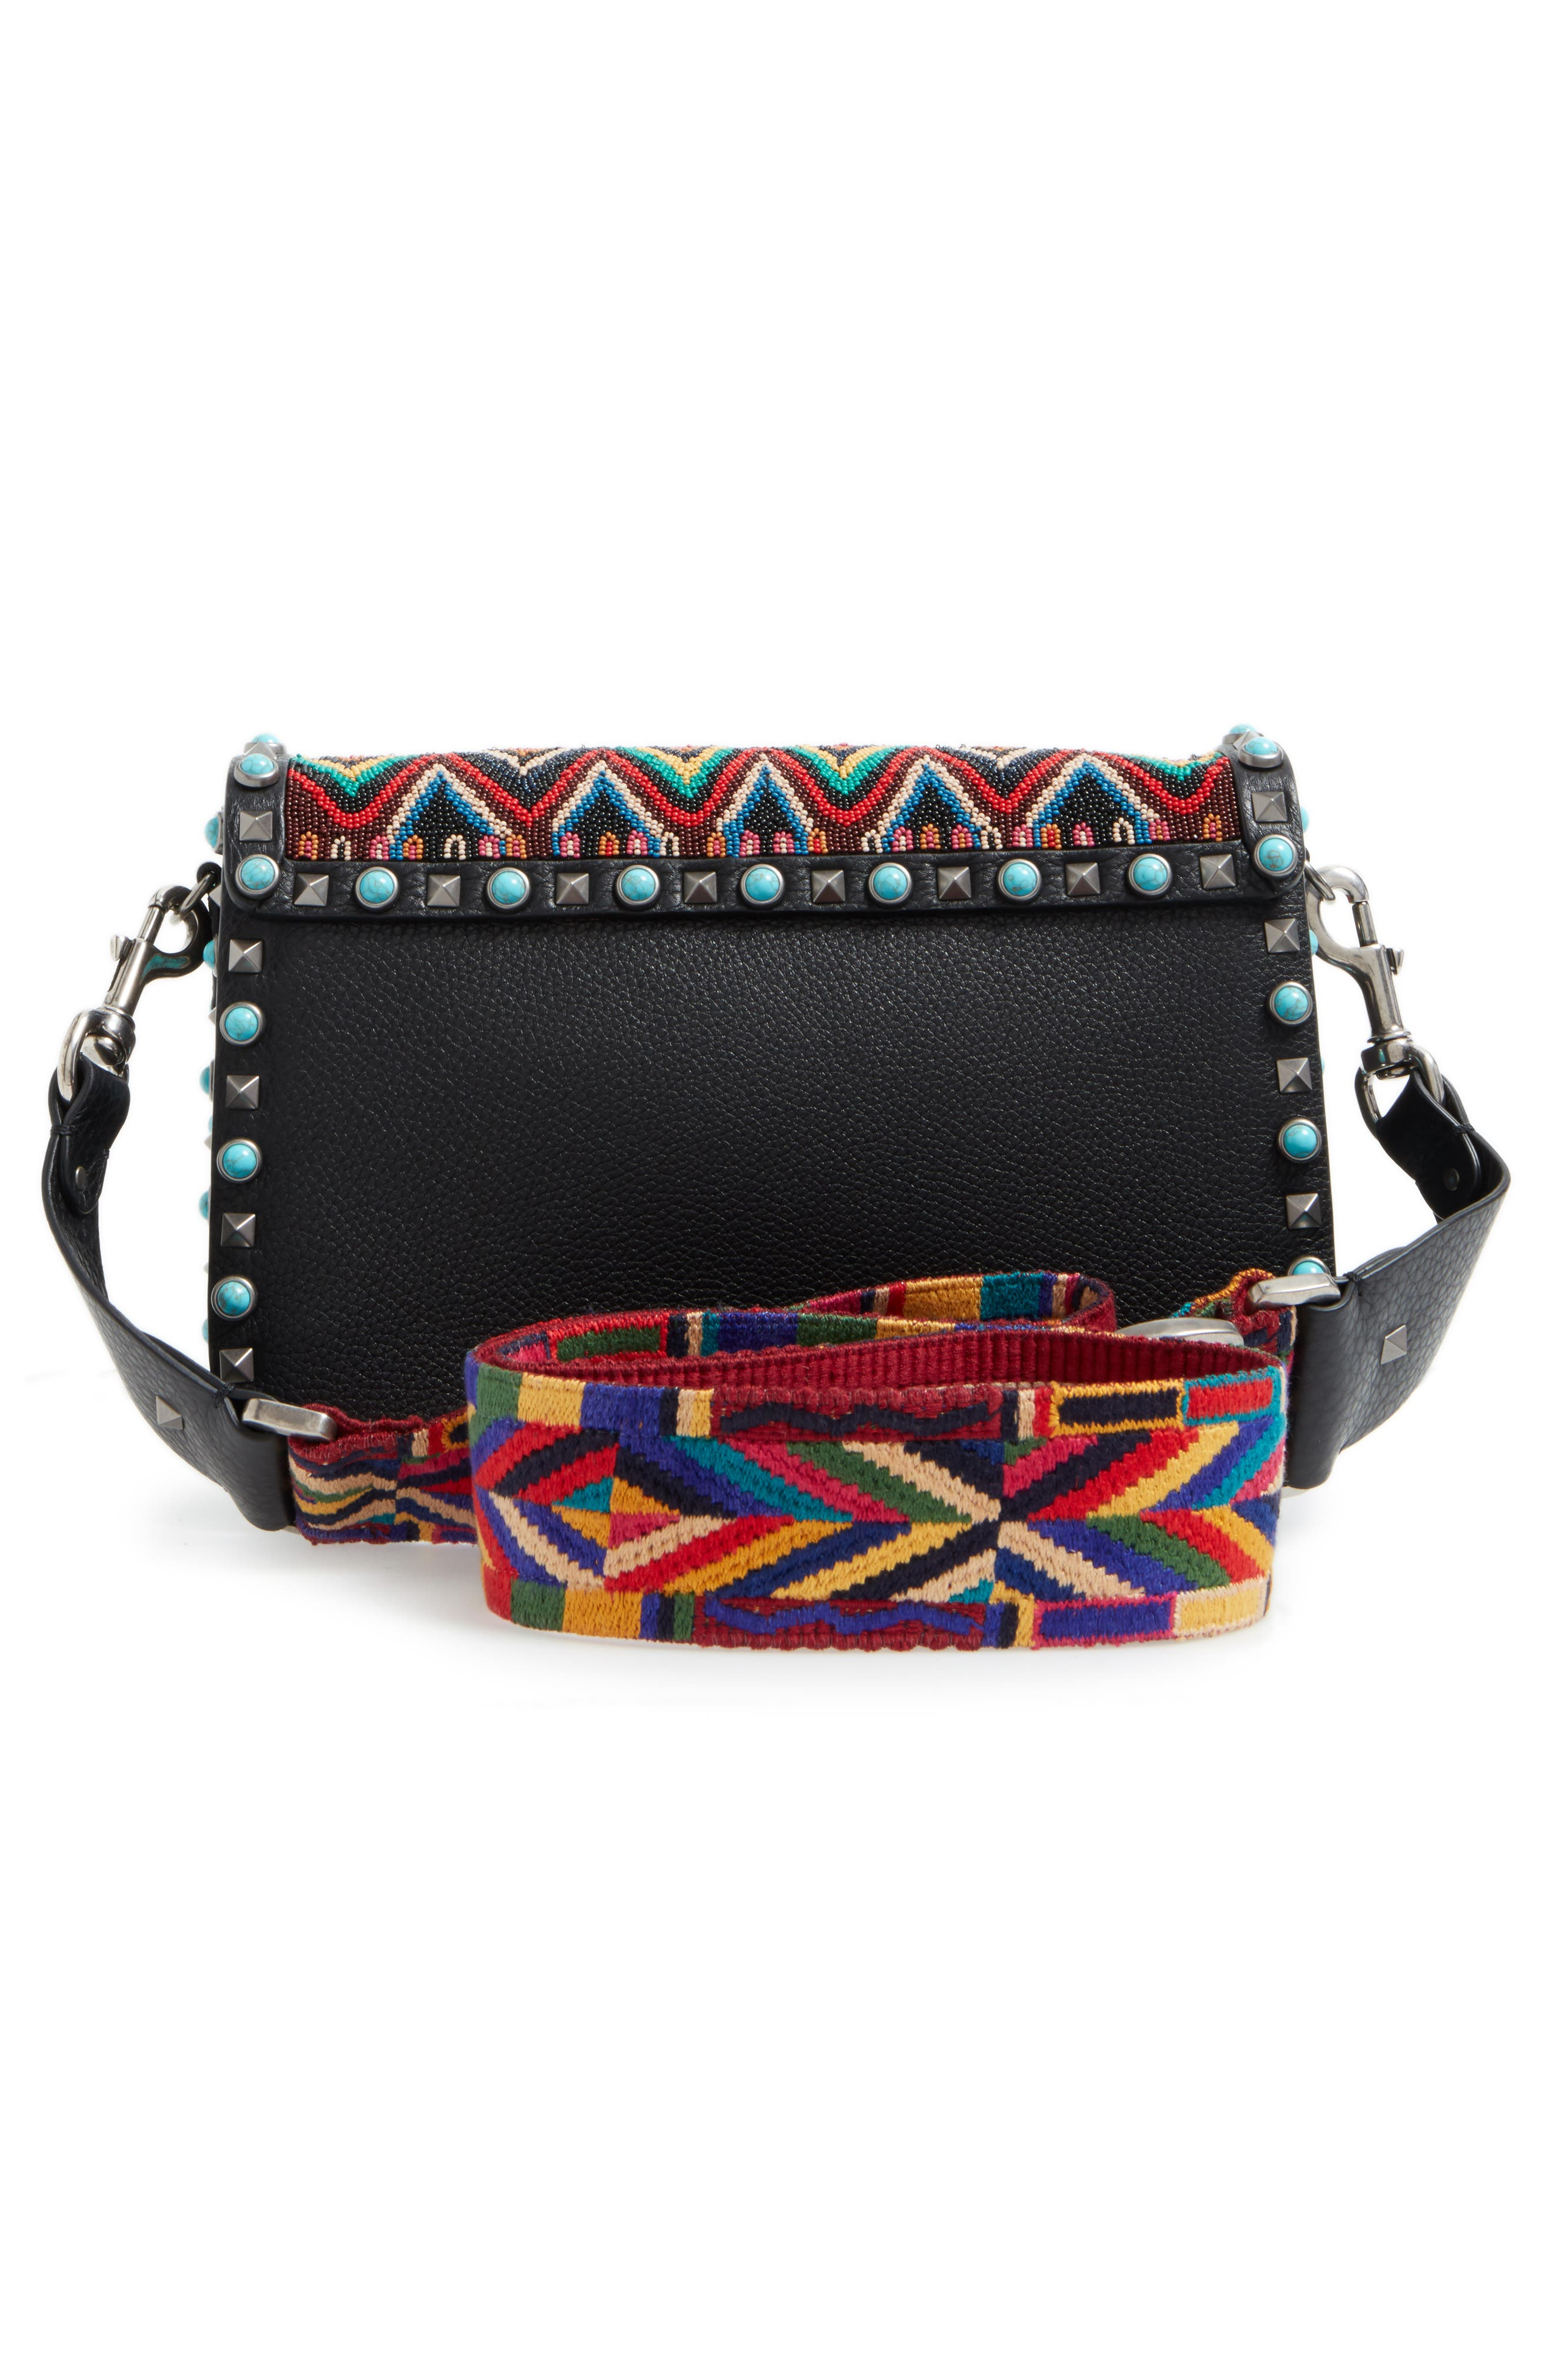 Valentino Rockstud Rolling Beaded Shoulder Bag with Embroidered Guitar Strap,                             Alternate thumbnail 4, color,                             001